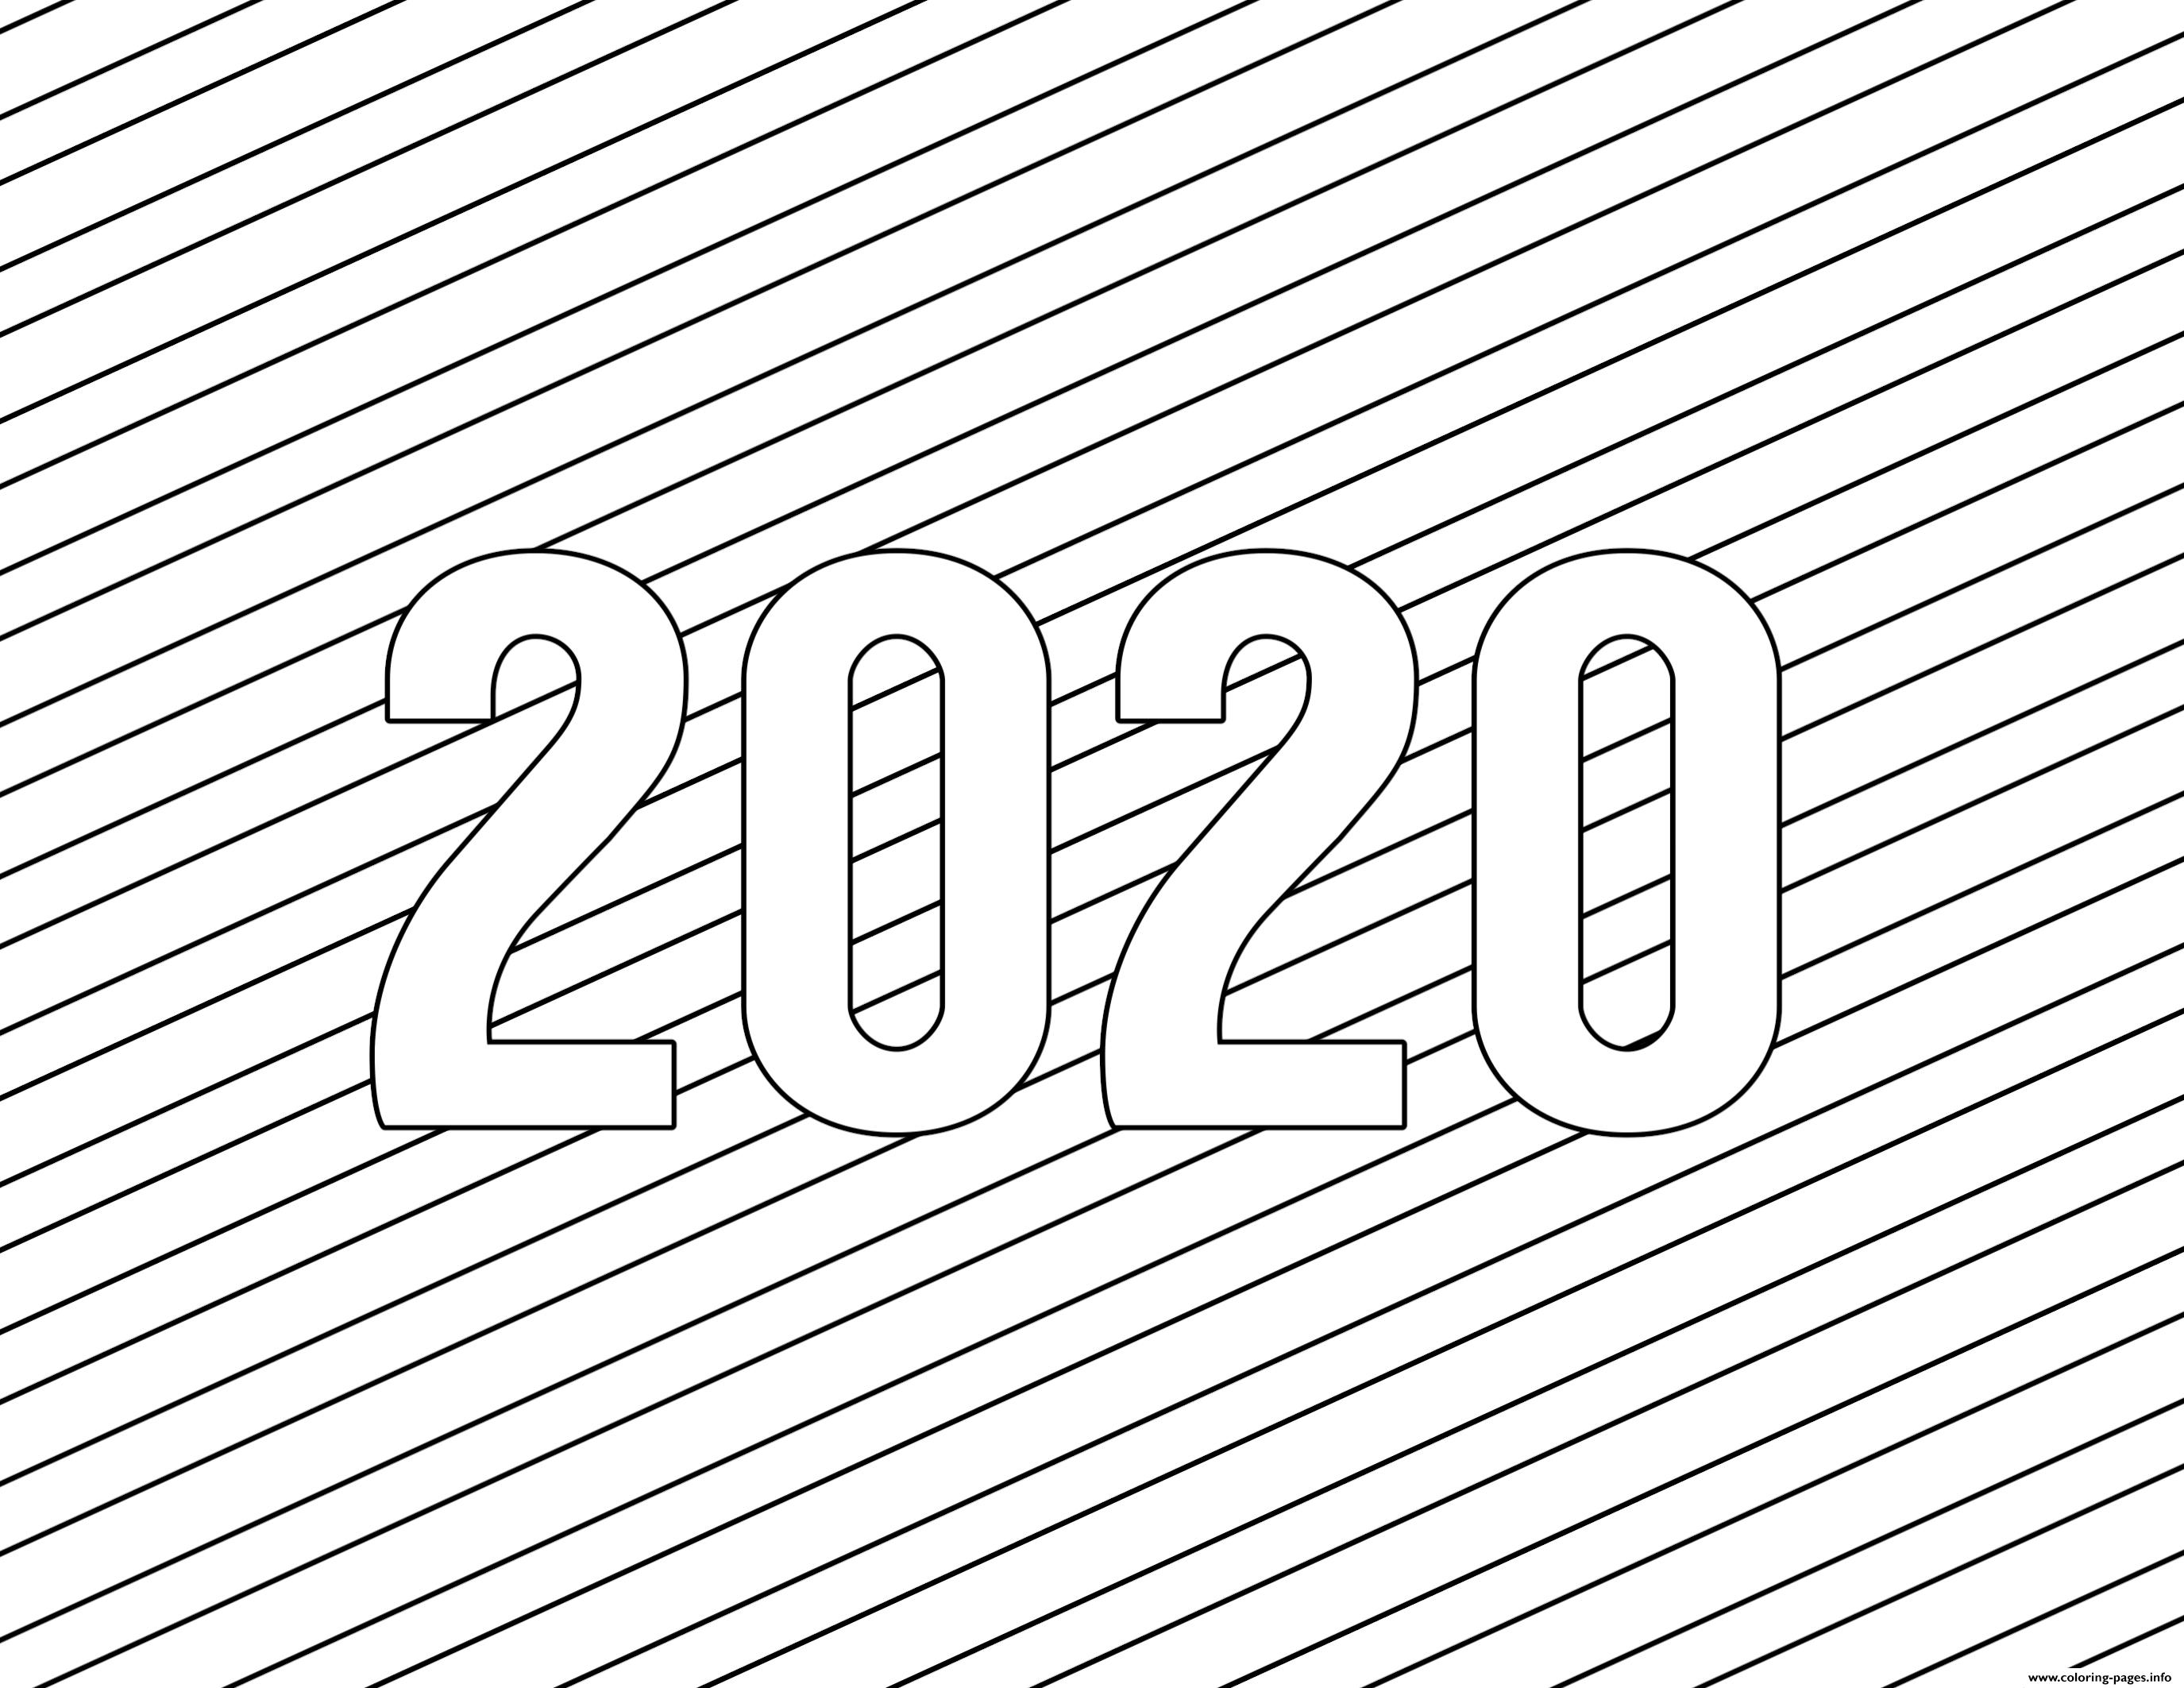 coloring pages 2020 top 10 new year 2020 coloring pages free printable pages 2020 coloring